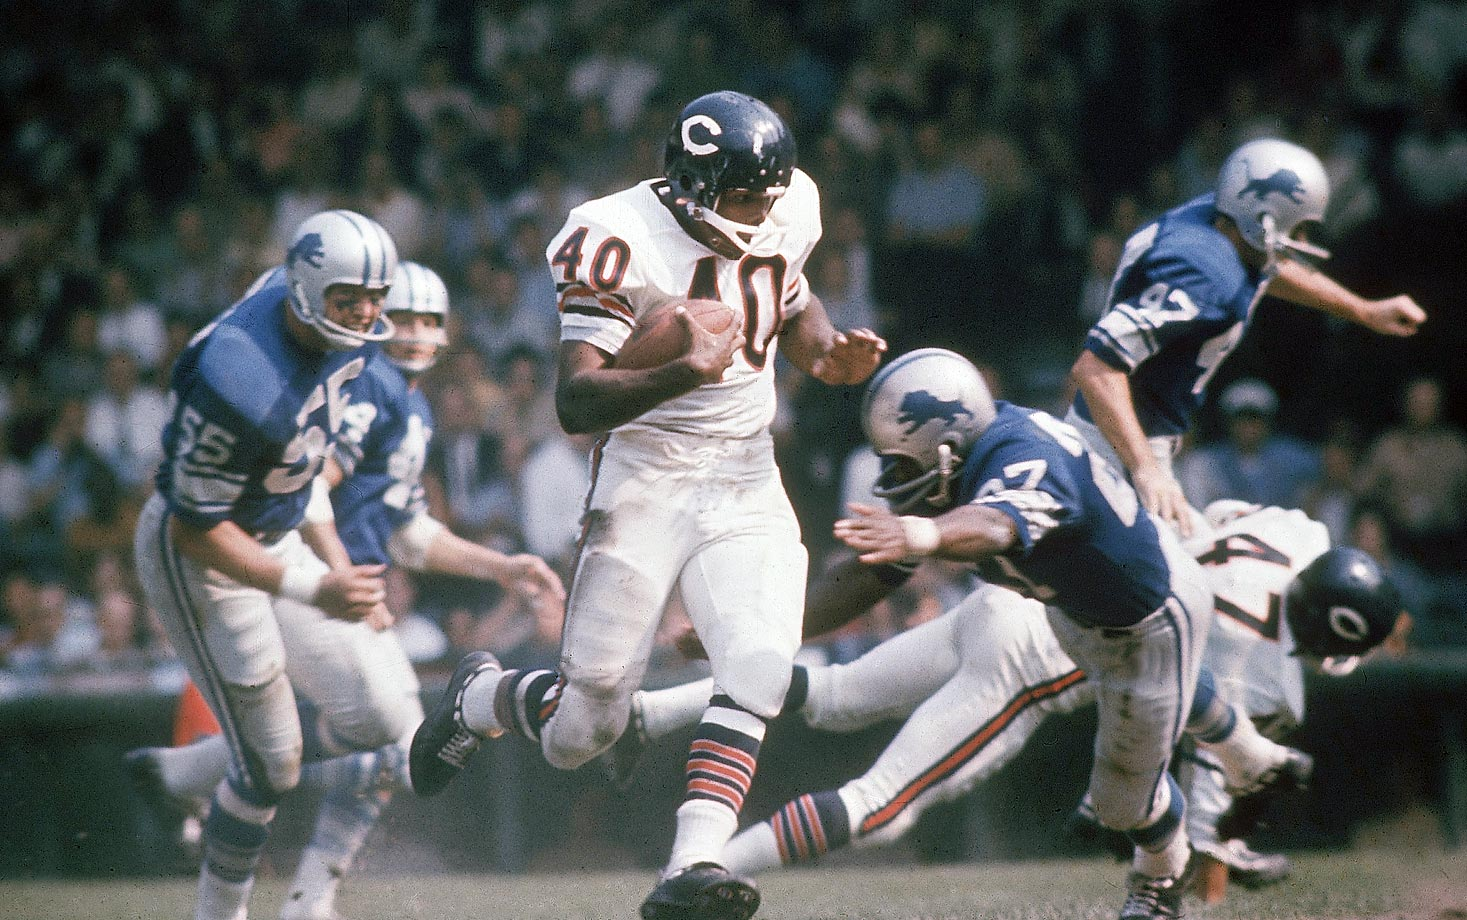 Hall of Fame running back Gale Sayers in a Chicago Bears game against the Detroit Lions.